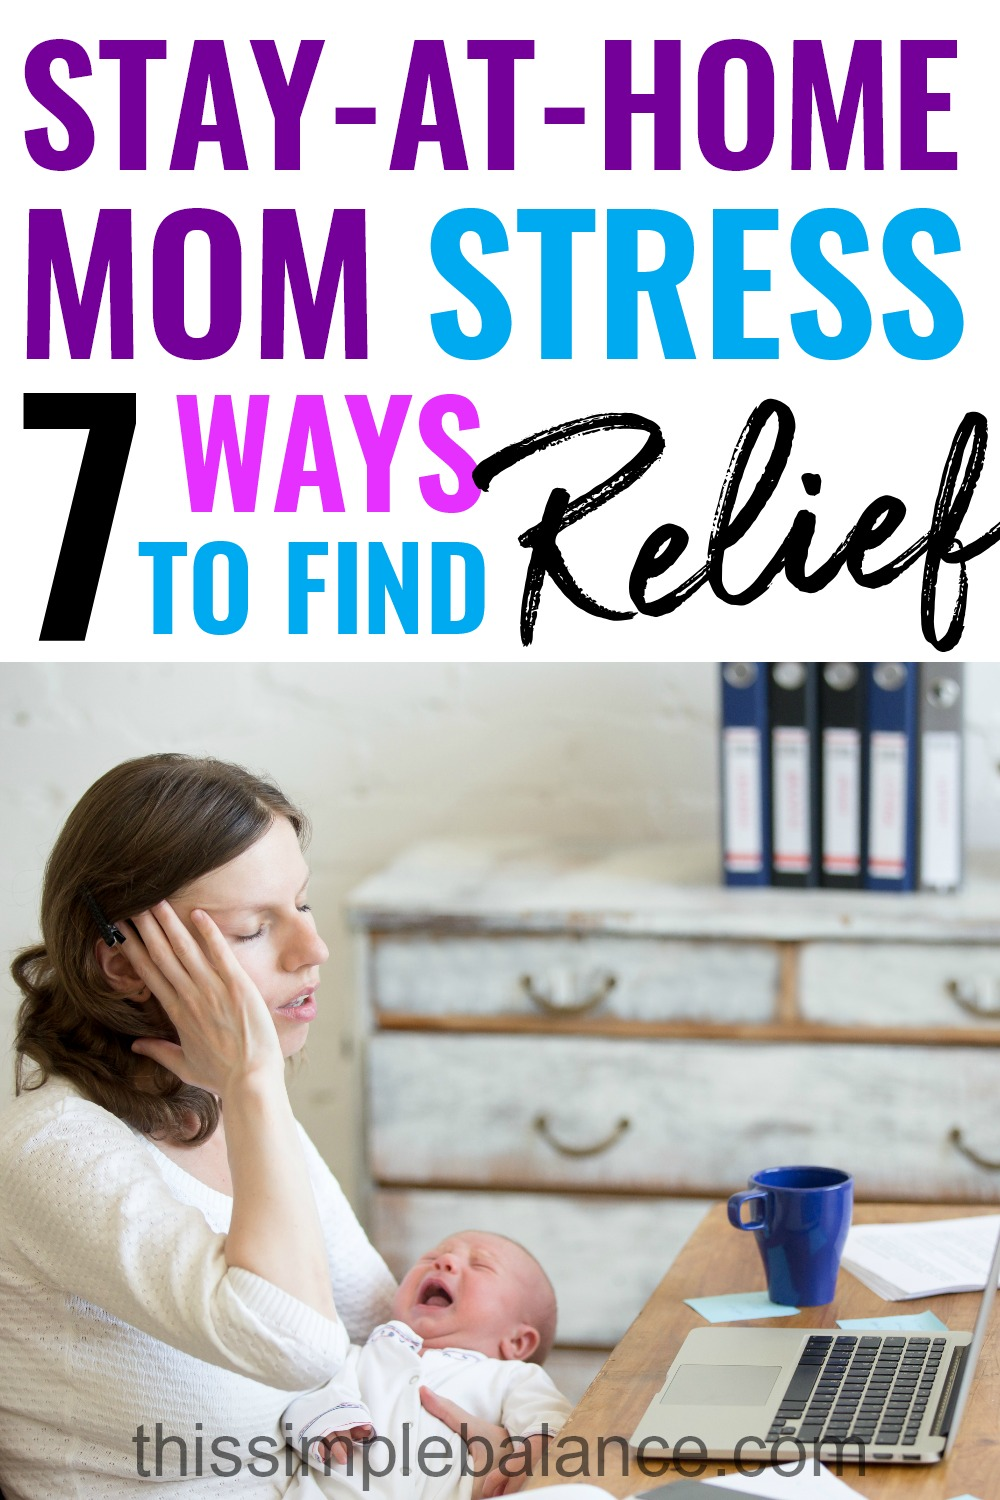 Stay-at-Home Mom Stress: Hacks, Tips and Ideas to find relief! #stayathomemom #momlife